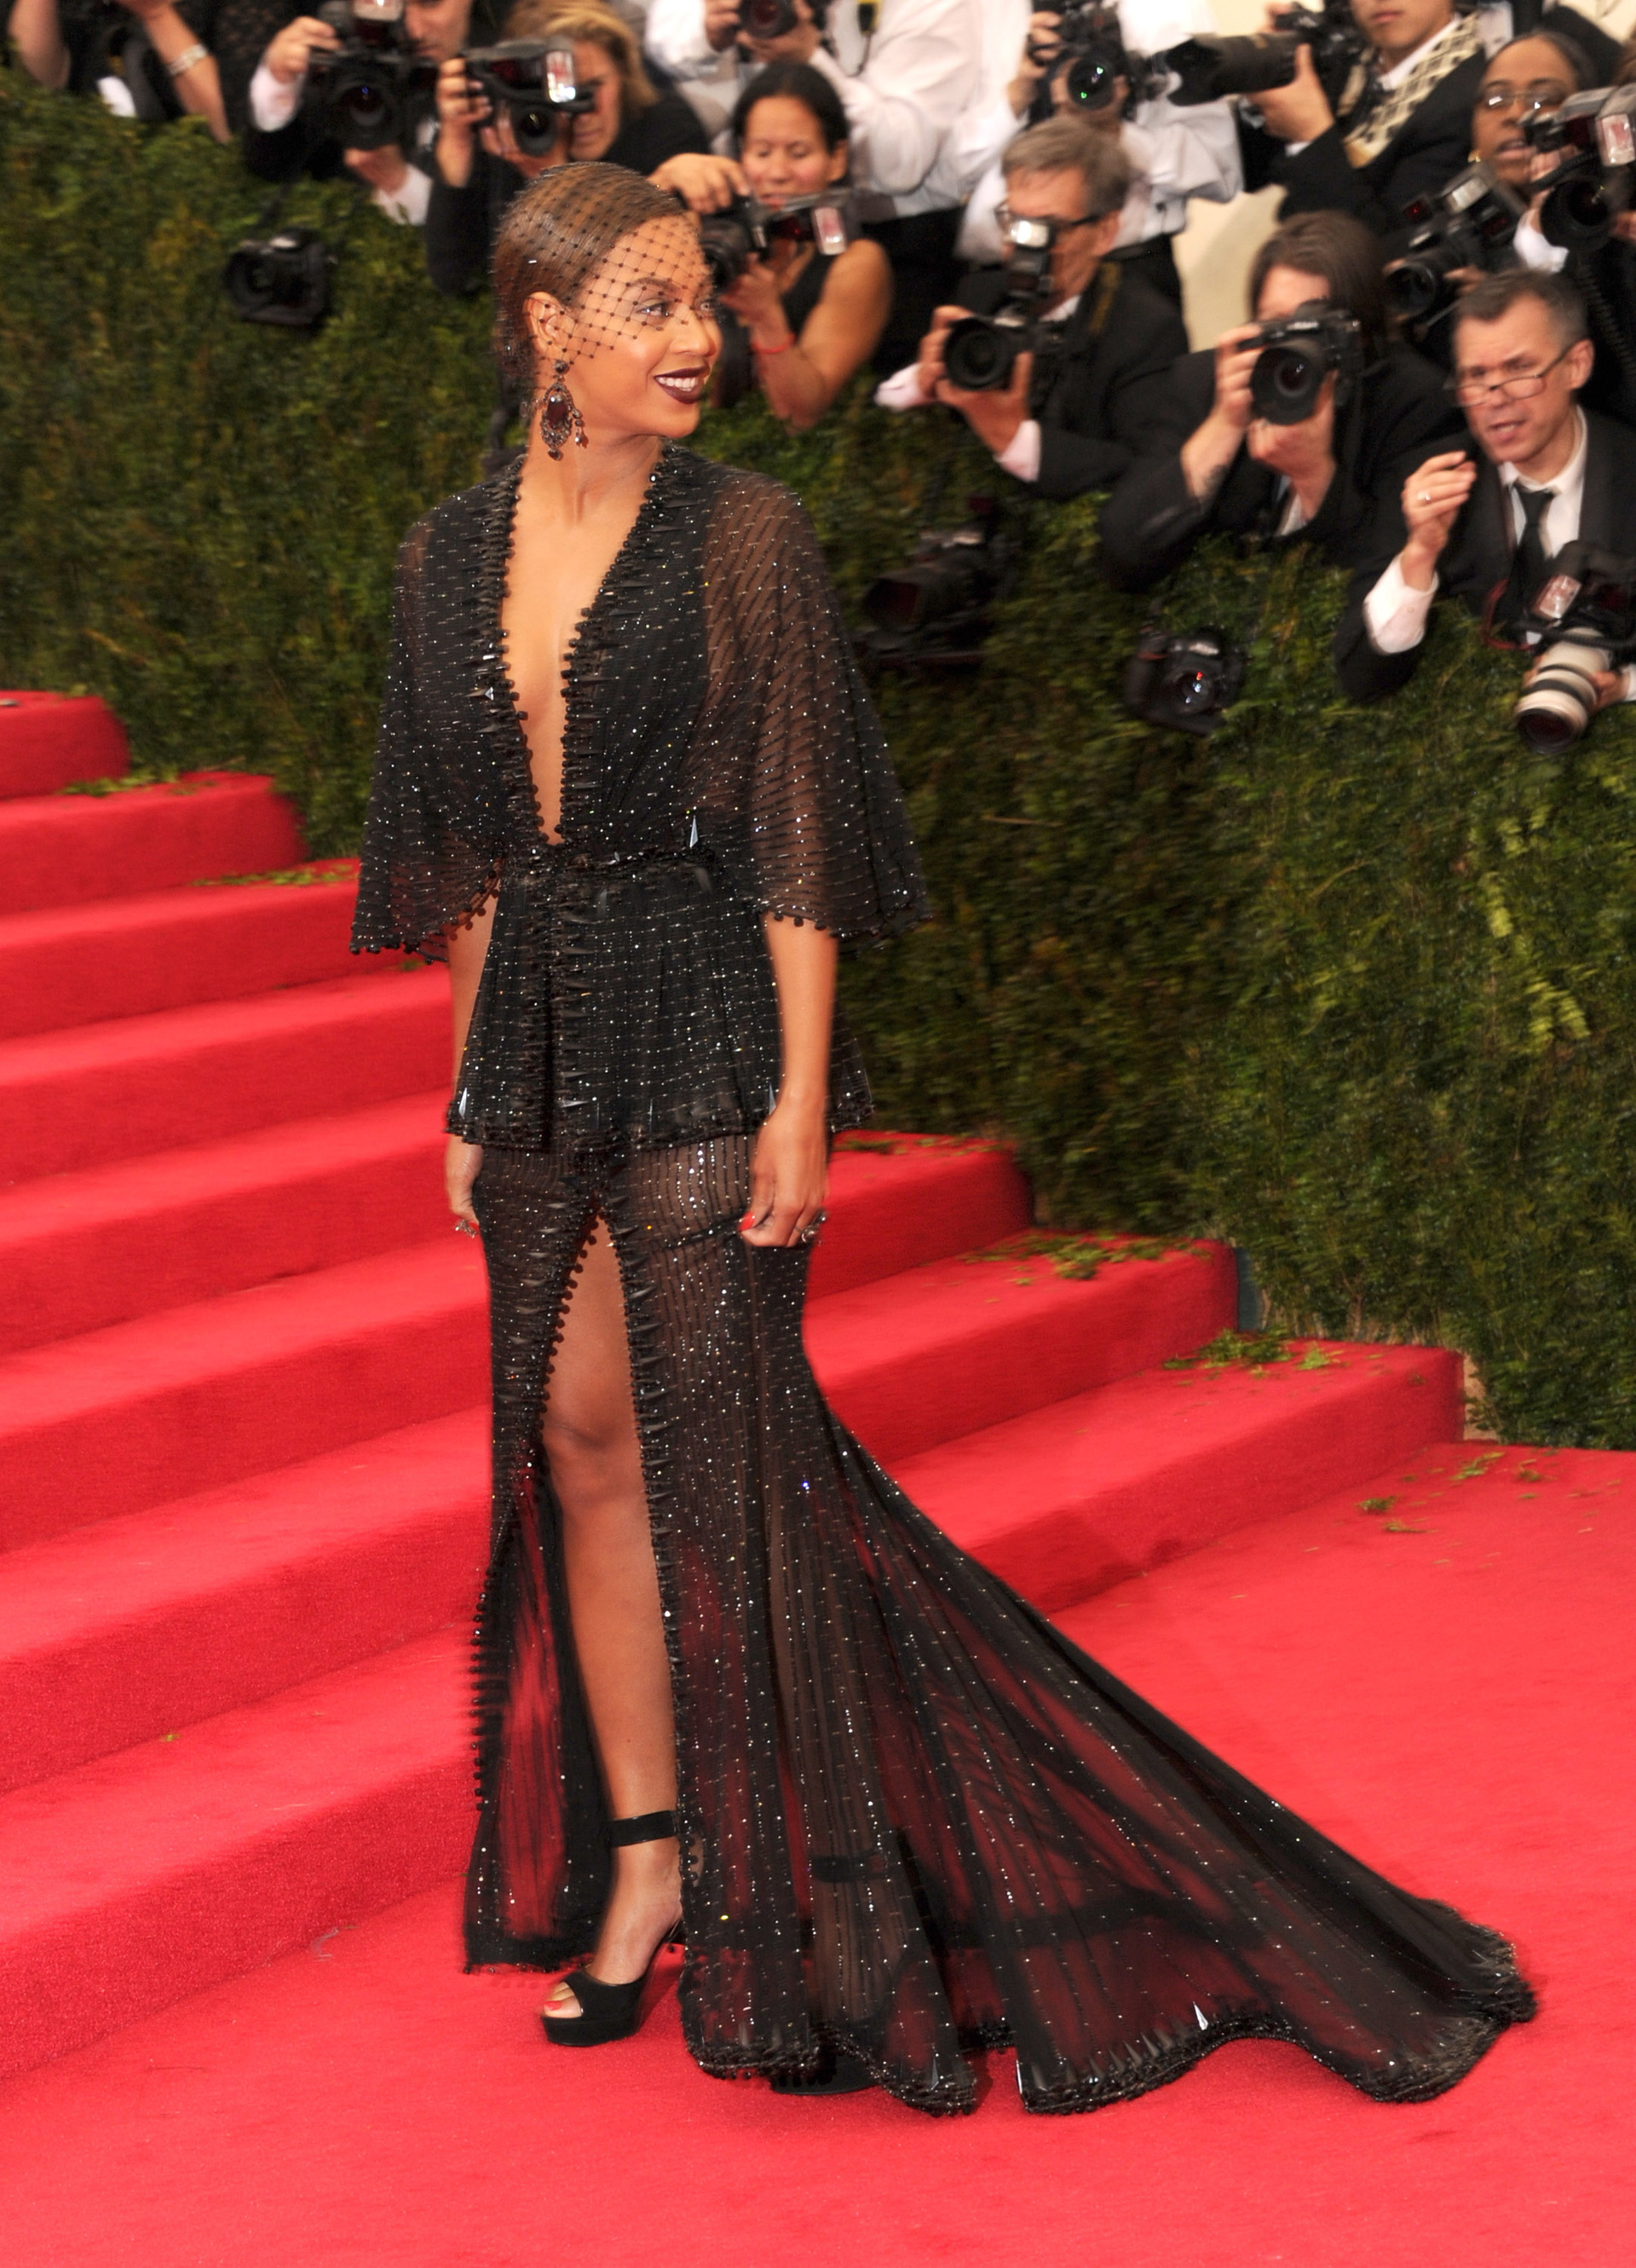 Beyonce at the 2014 Met Gala